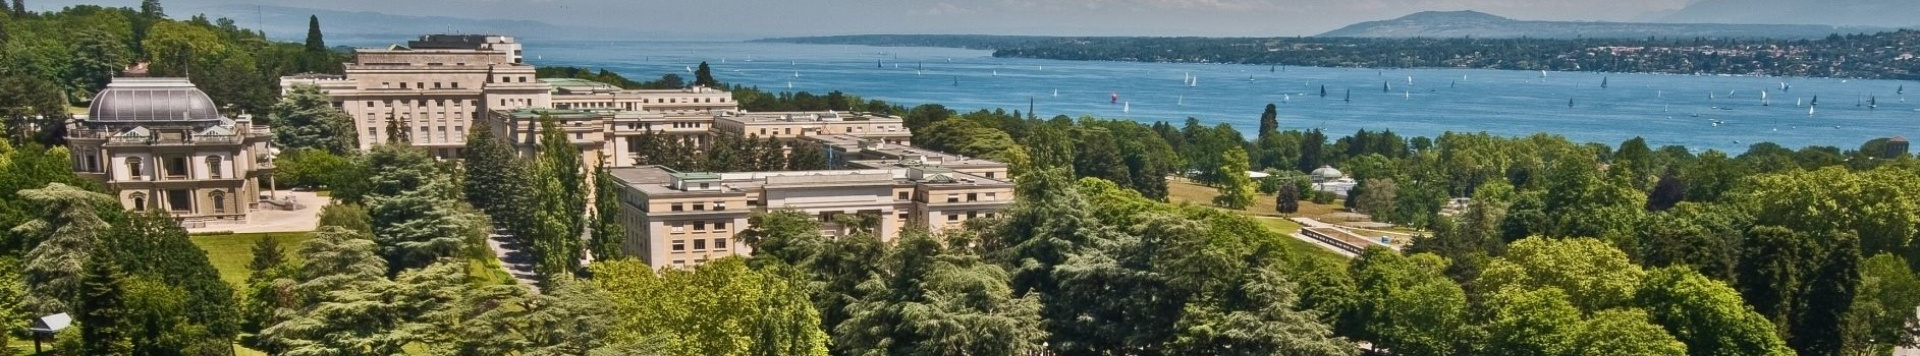 Palais des Nations Geneva